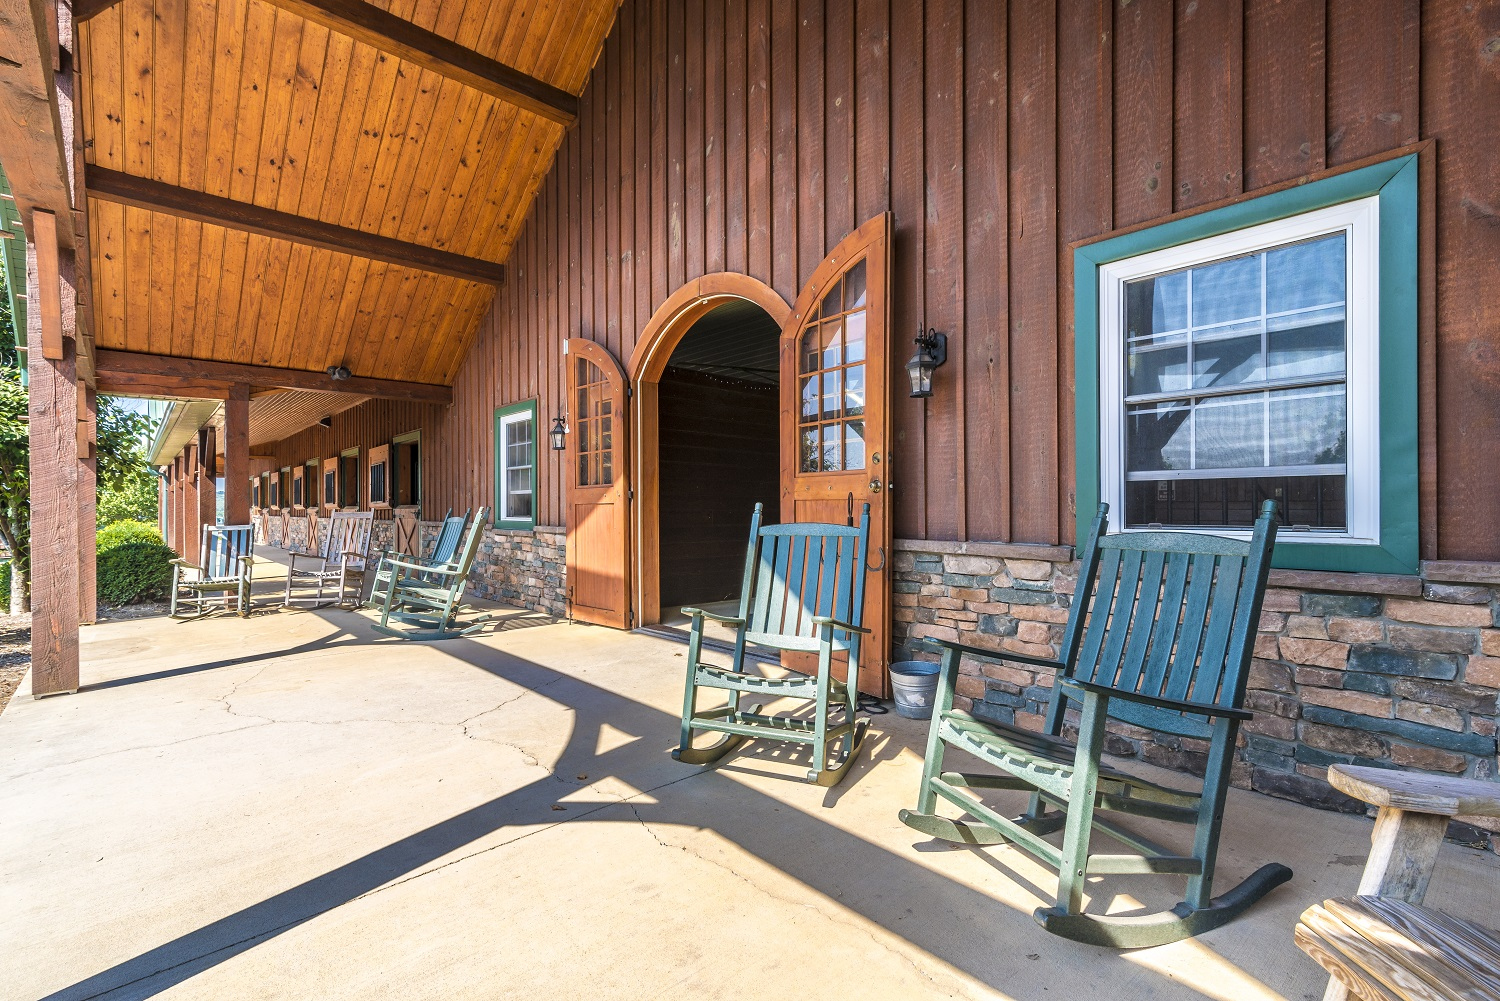 After spending time with your horse,Relax in the rocking chairs on our front porch overlooking the rolling hills of Maryland